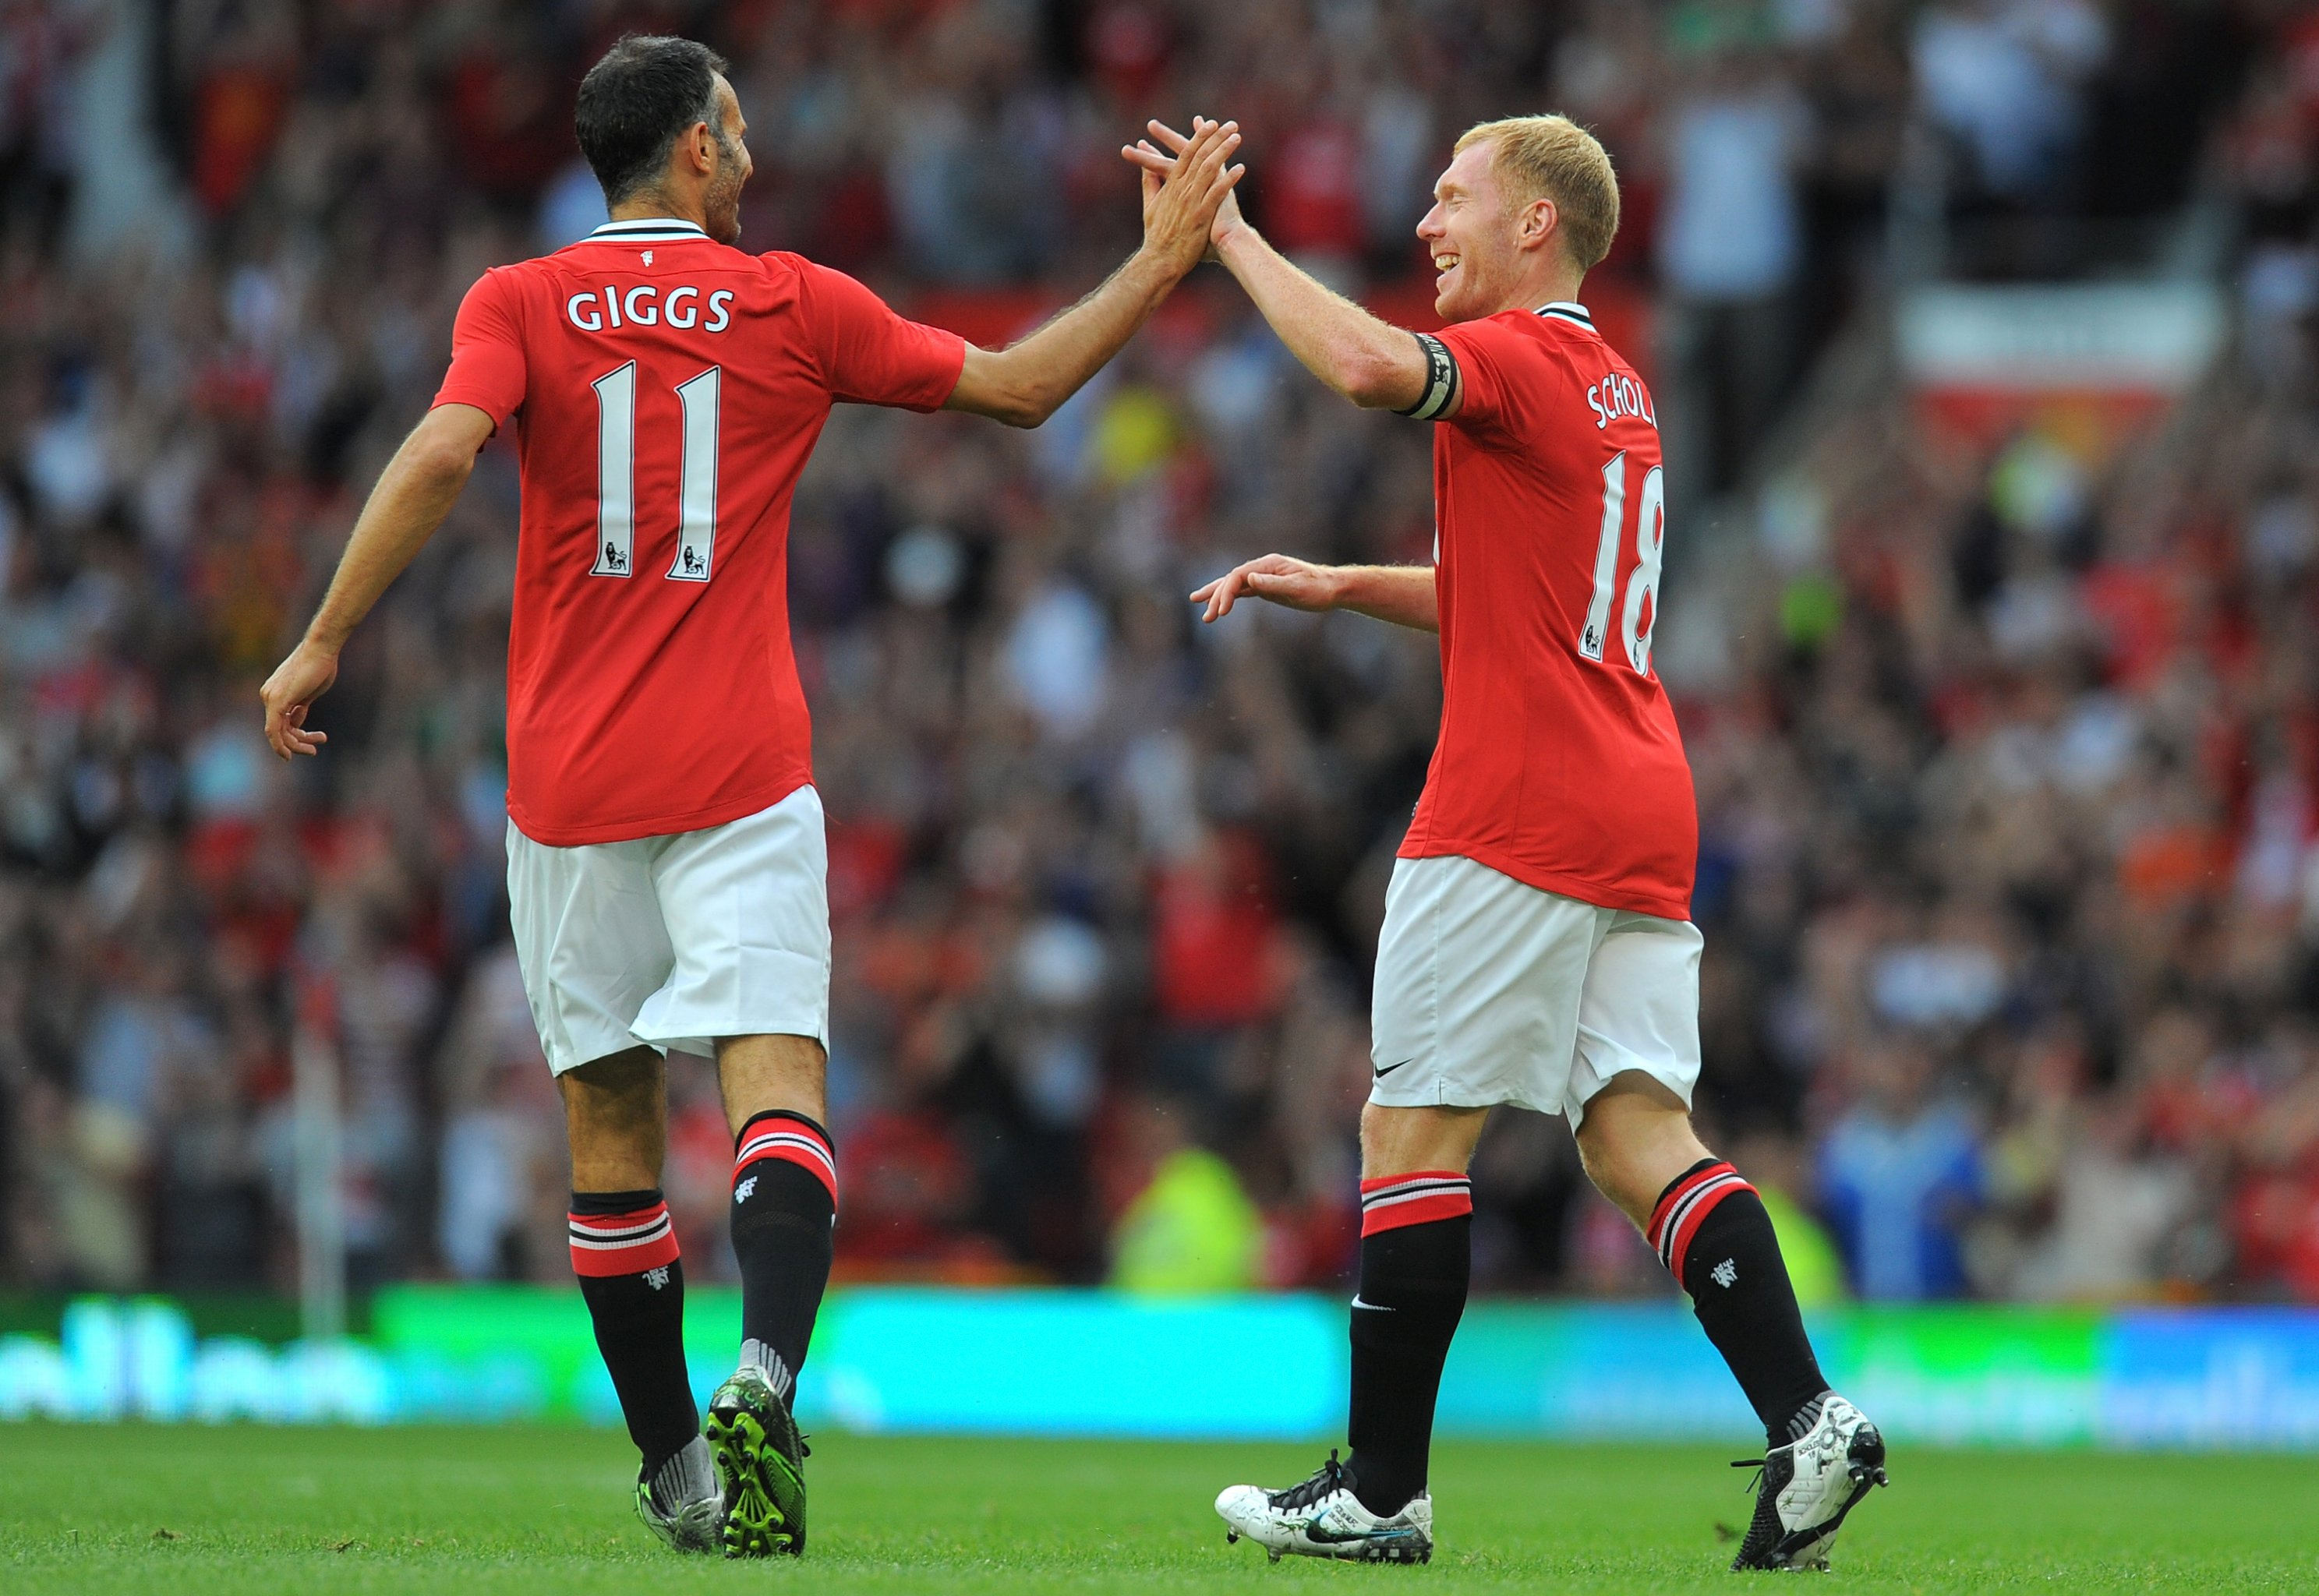 Manchester United S All Time Premier League Squad Based On